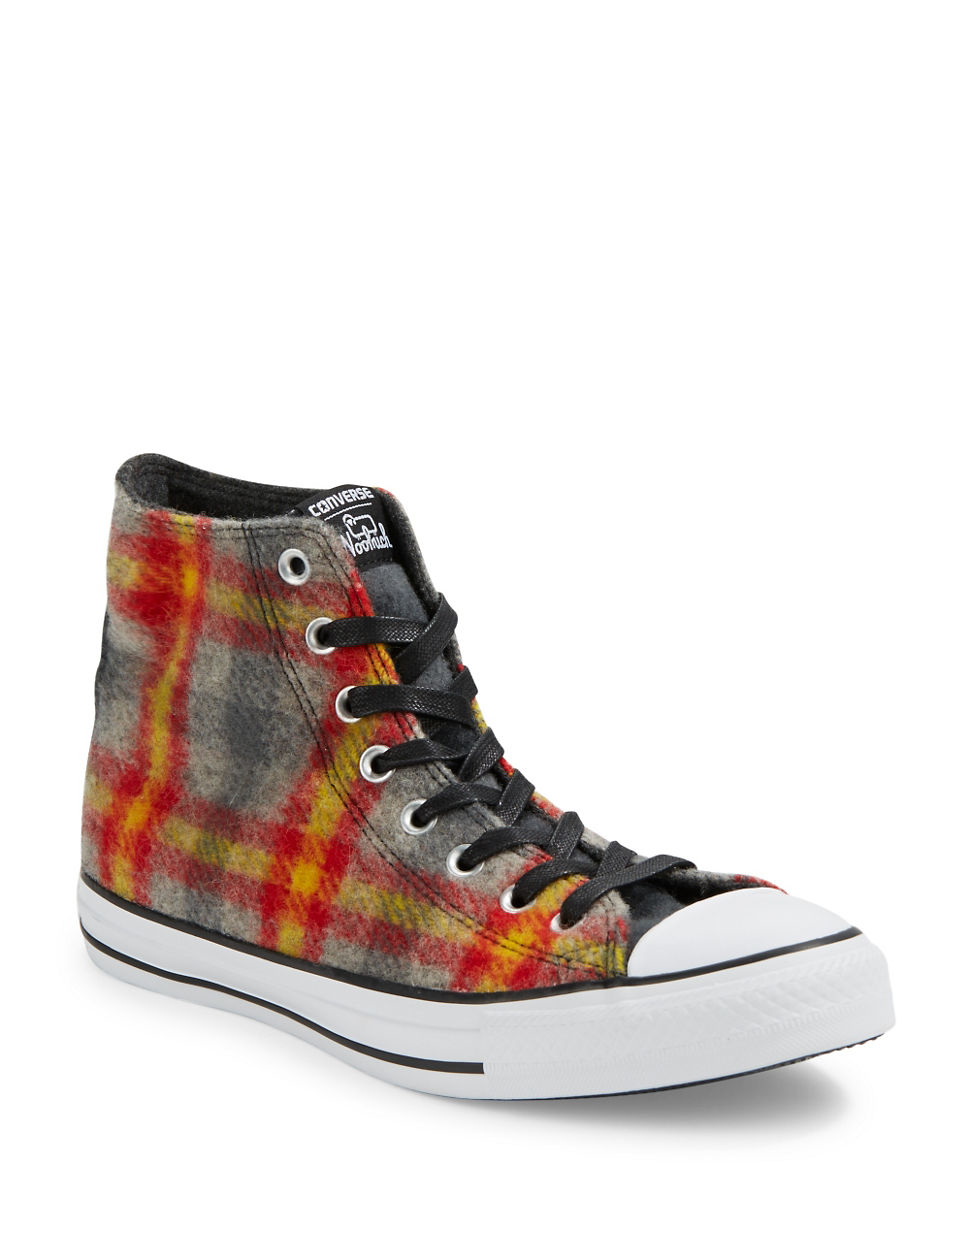 lyst converse unisex plaid high top sneakers for men. Black Bedroom Furniture Sets. Home Design Ideas